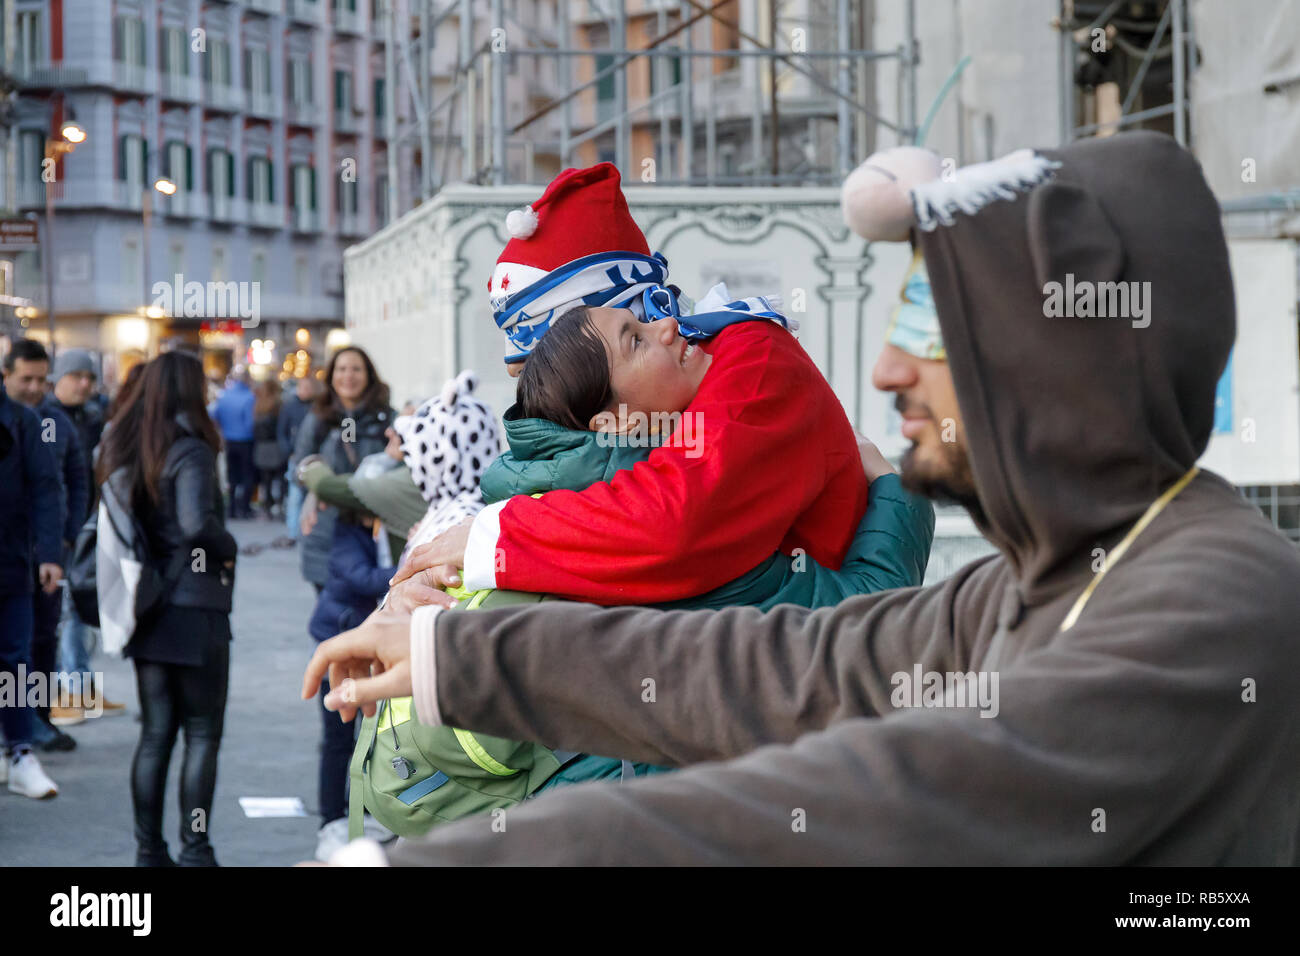 Naples, Italy - December 16, 2018: Piazza del Plebiscito, tourist hugs a Santa Claus on the street in a sign of solidarity and peace. We are in the Ch - Stock Image